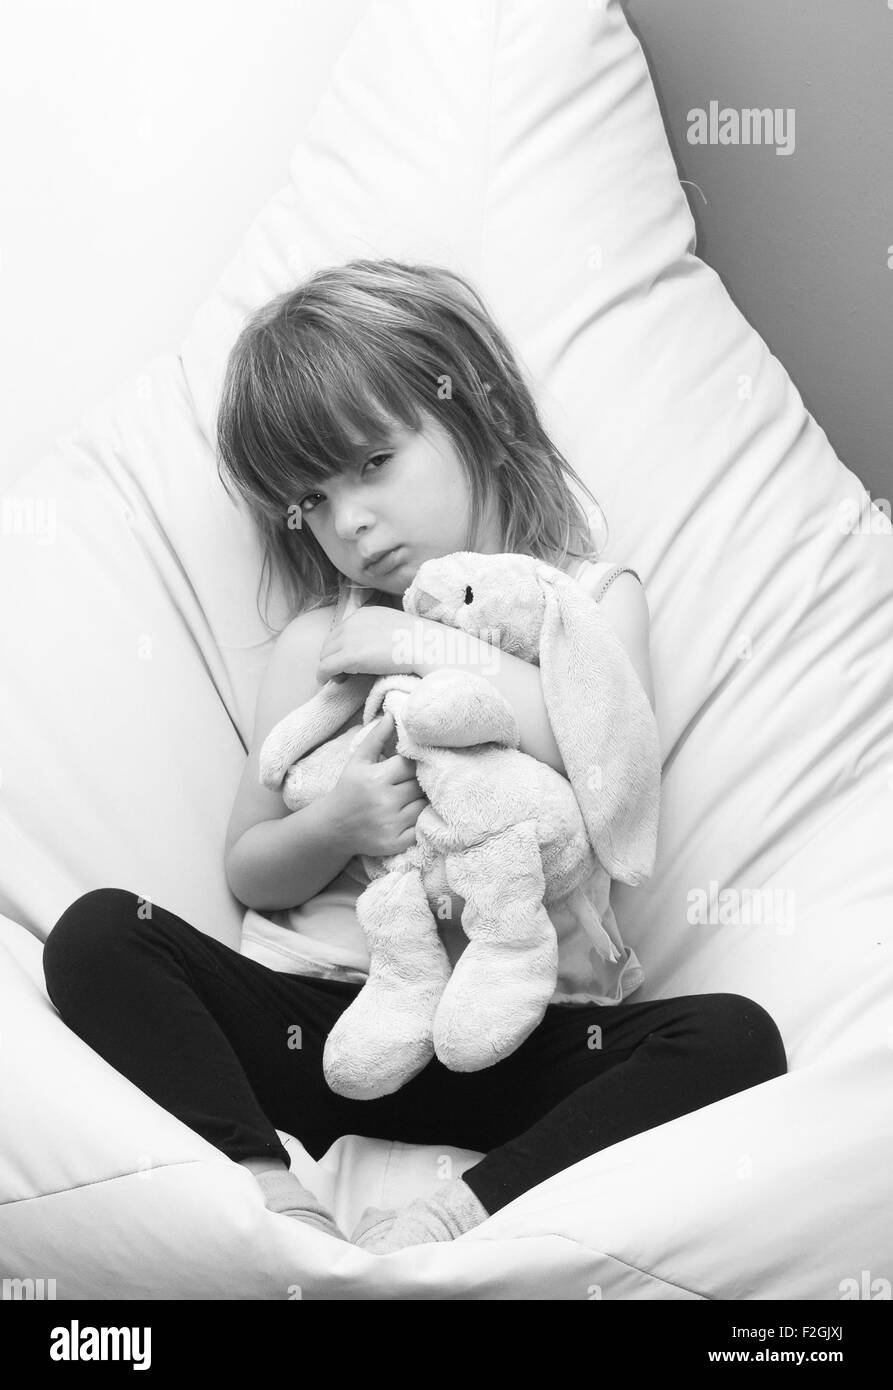 Angry child holding a soft rabbit - Stock Image